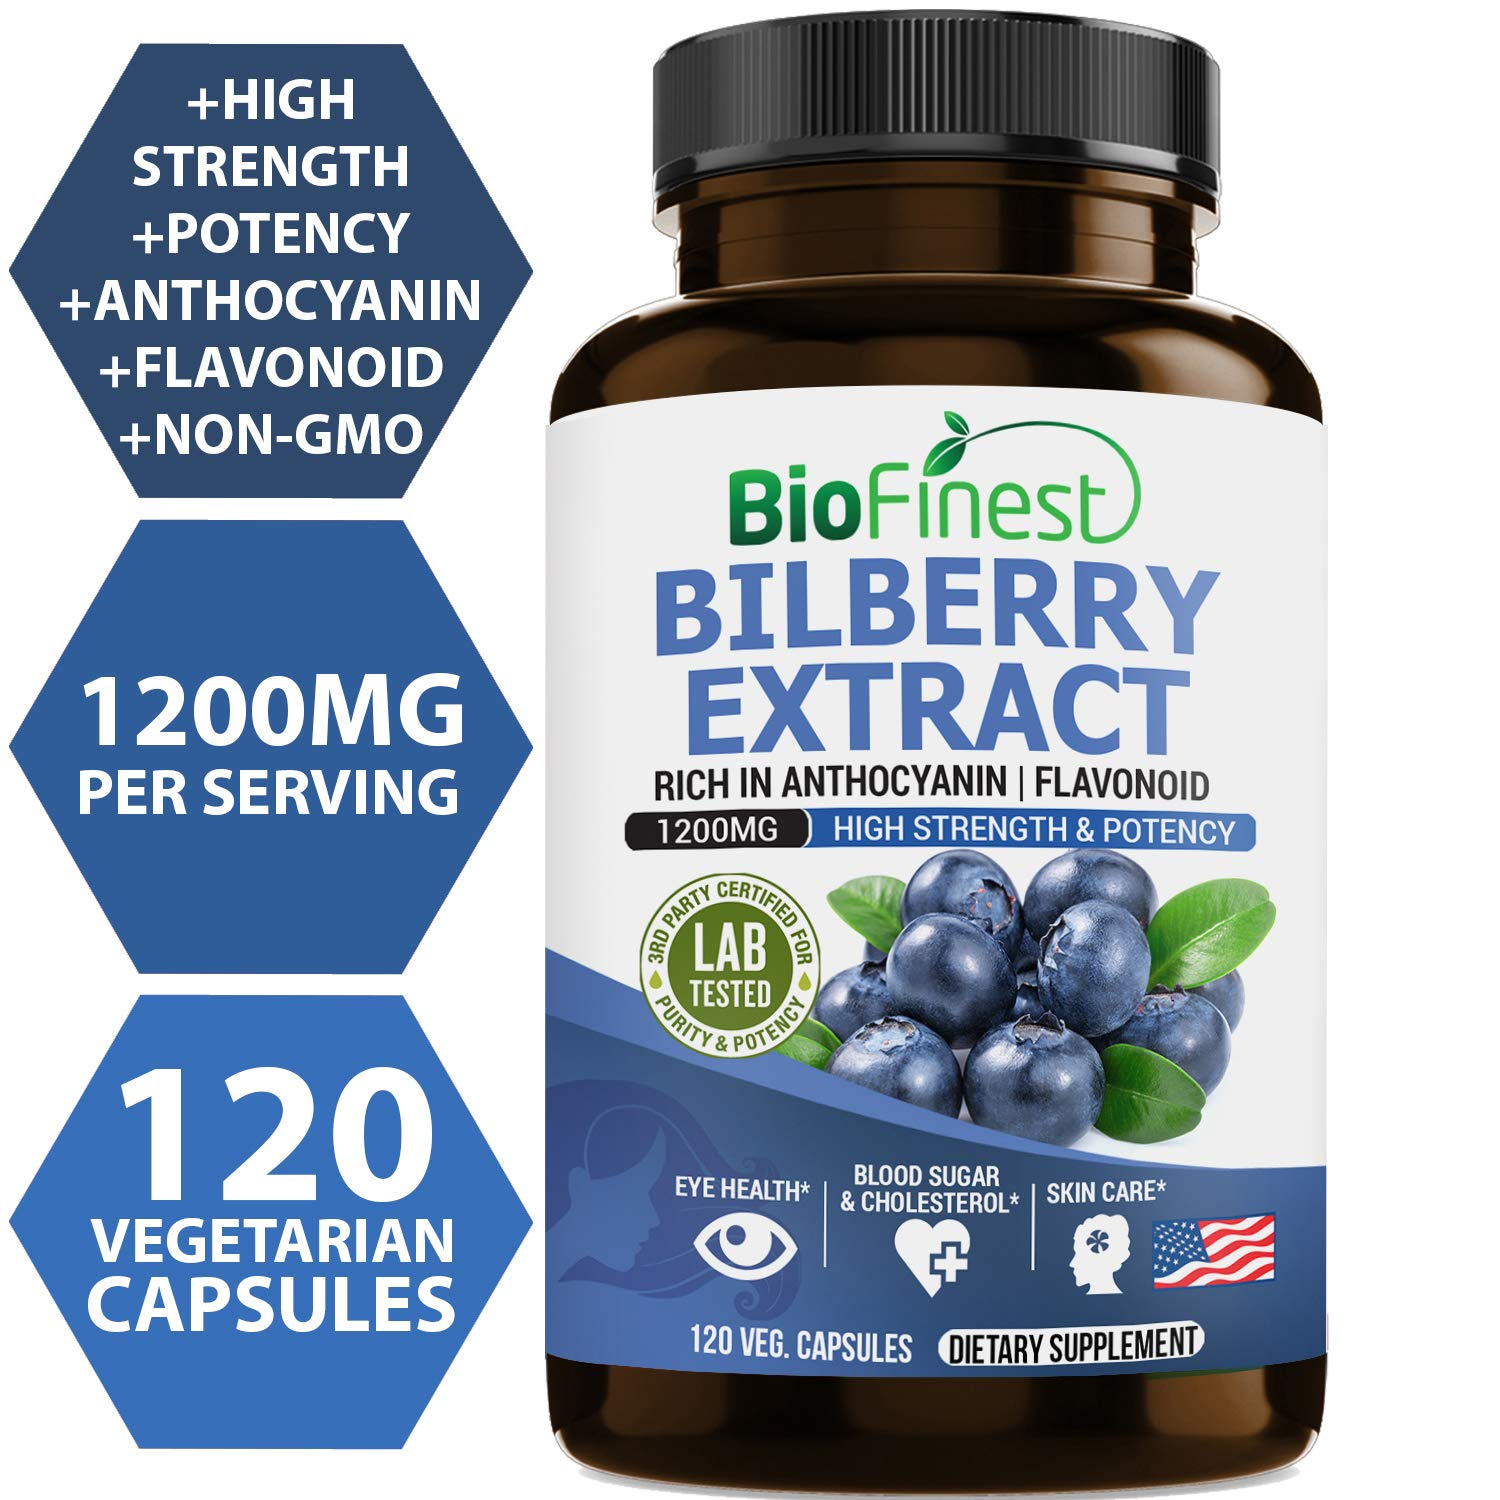 Biofinest Bilberry Extract - 1200mg with 4:1 Bilberry Fruit Extract - Pure Gluten-Free Non-GMO - Made in USA - Supplement for Eyes Health, Blood Circulation,Night Vision (120 Vegetarian Capsules)